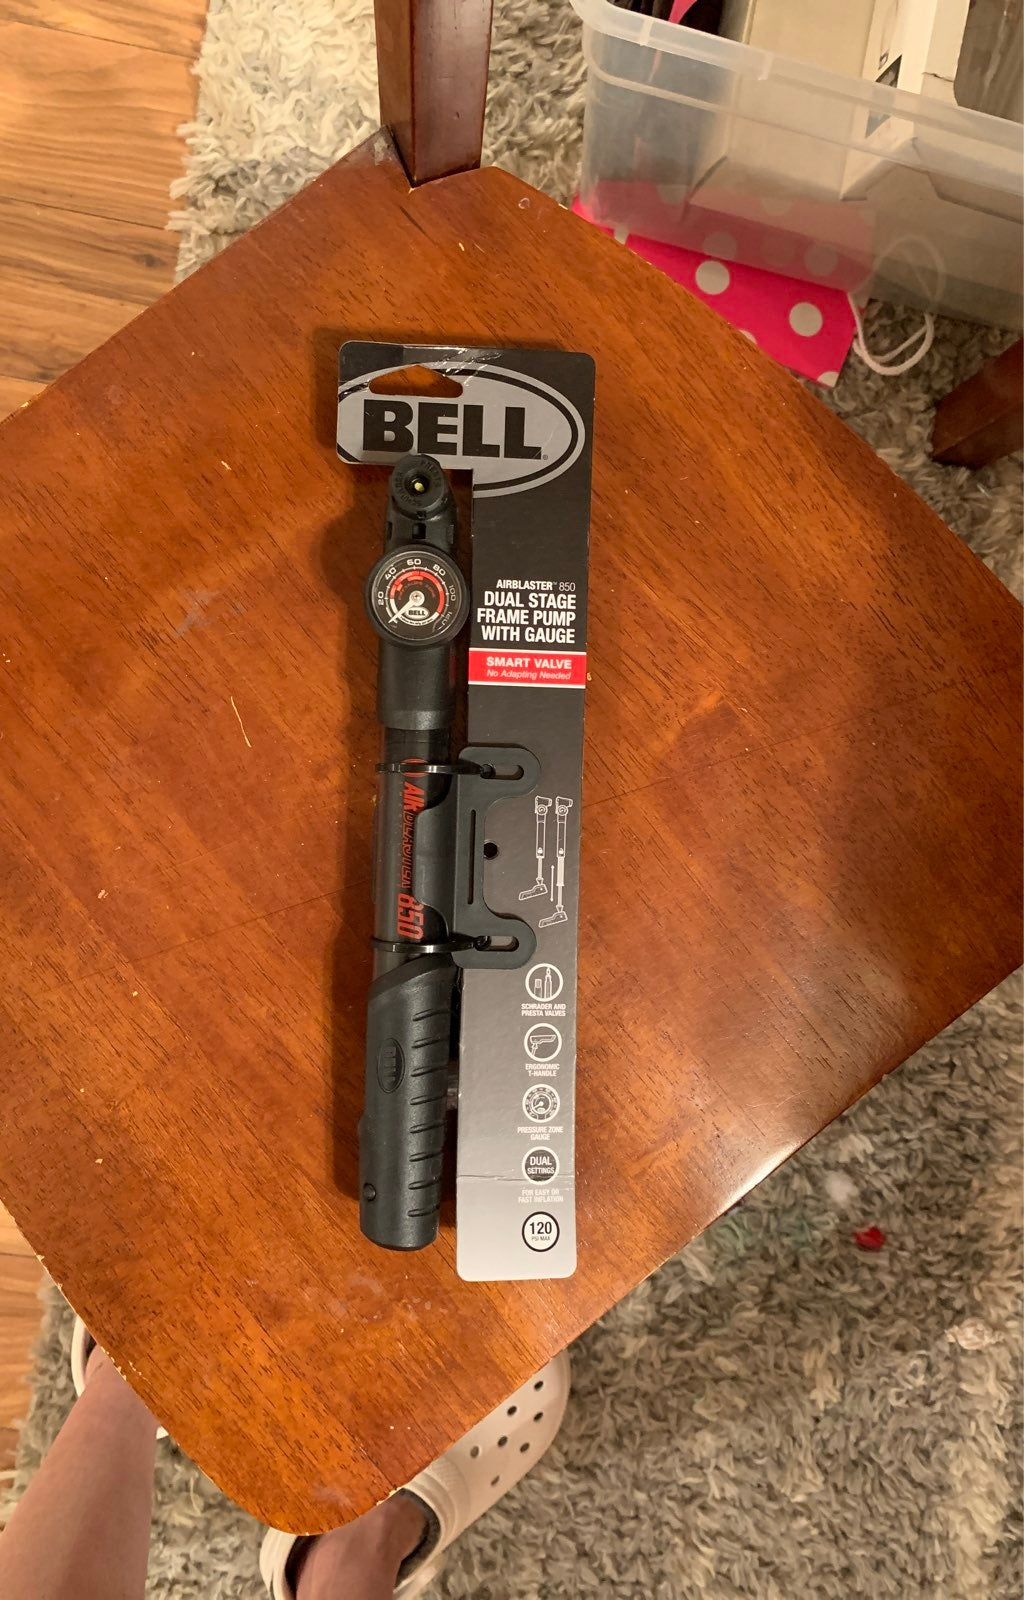 Bell door stage frame pump with Gage